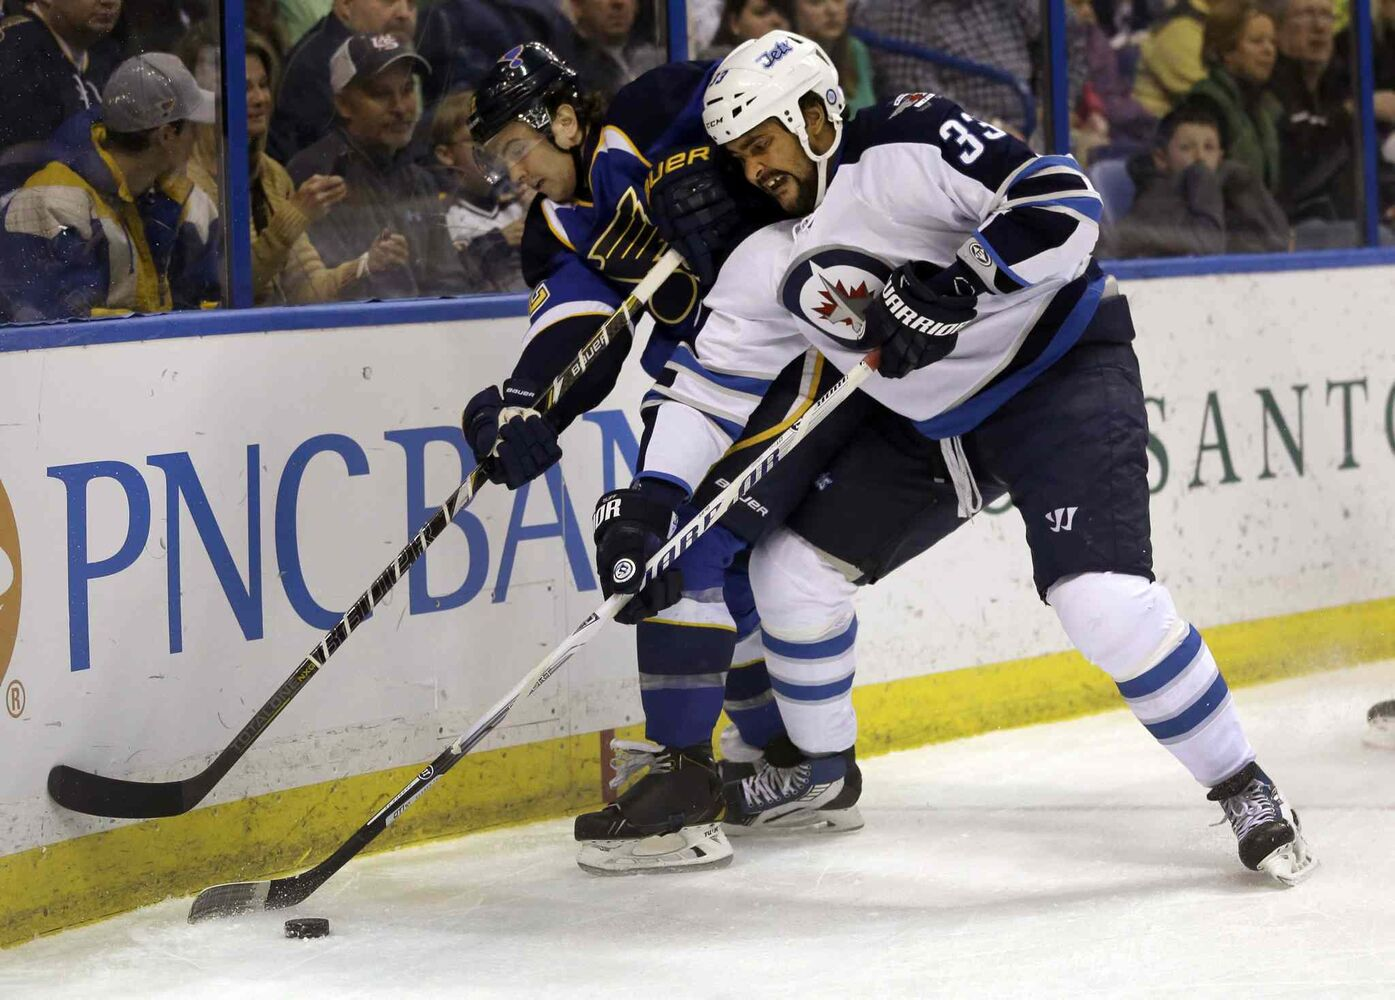 Winnipeg Jets forward Dustin Byfuglien and the St. Louis Blues Kevin Shattenkirk chase after a loose puck during the first period. (JEFF ROBERSON / THE ASSOCIATED PRESS)